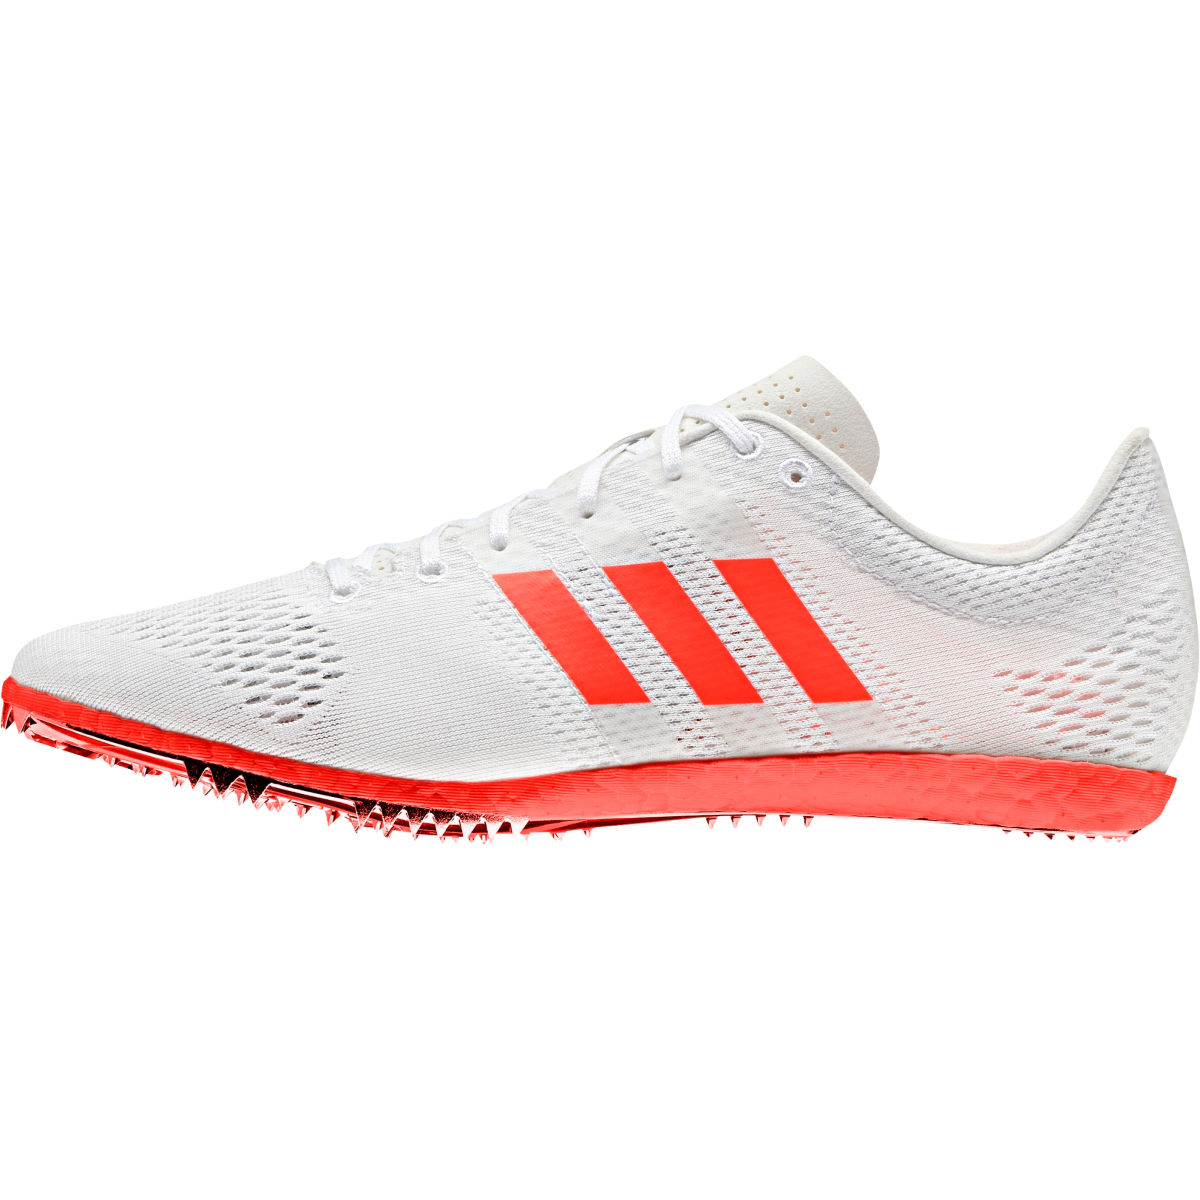 Adidas Adizero Avanti Shoes (AW16)   Spiked Running Shoes